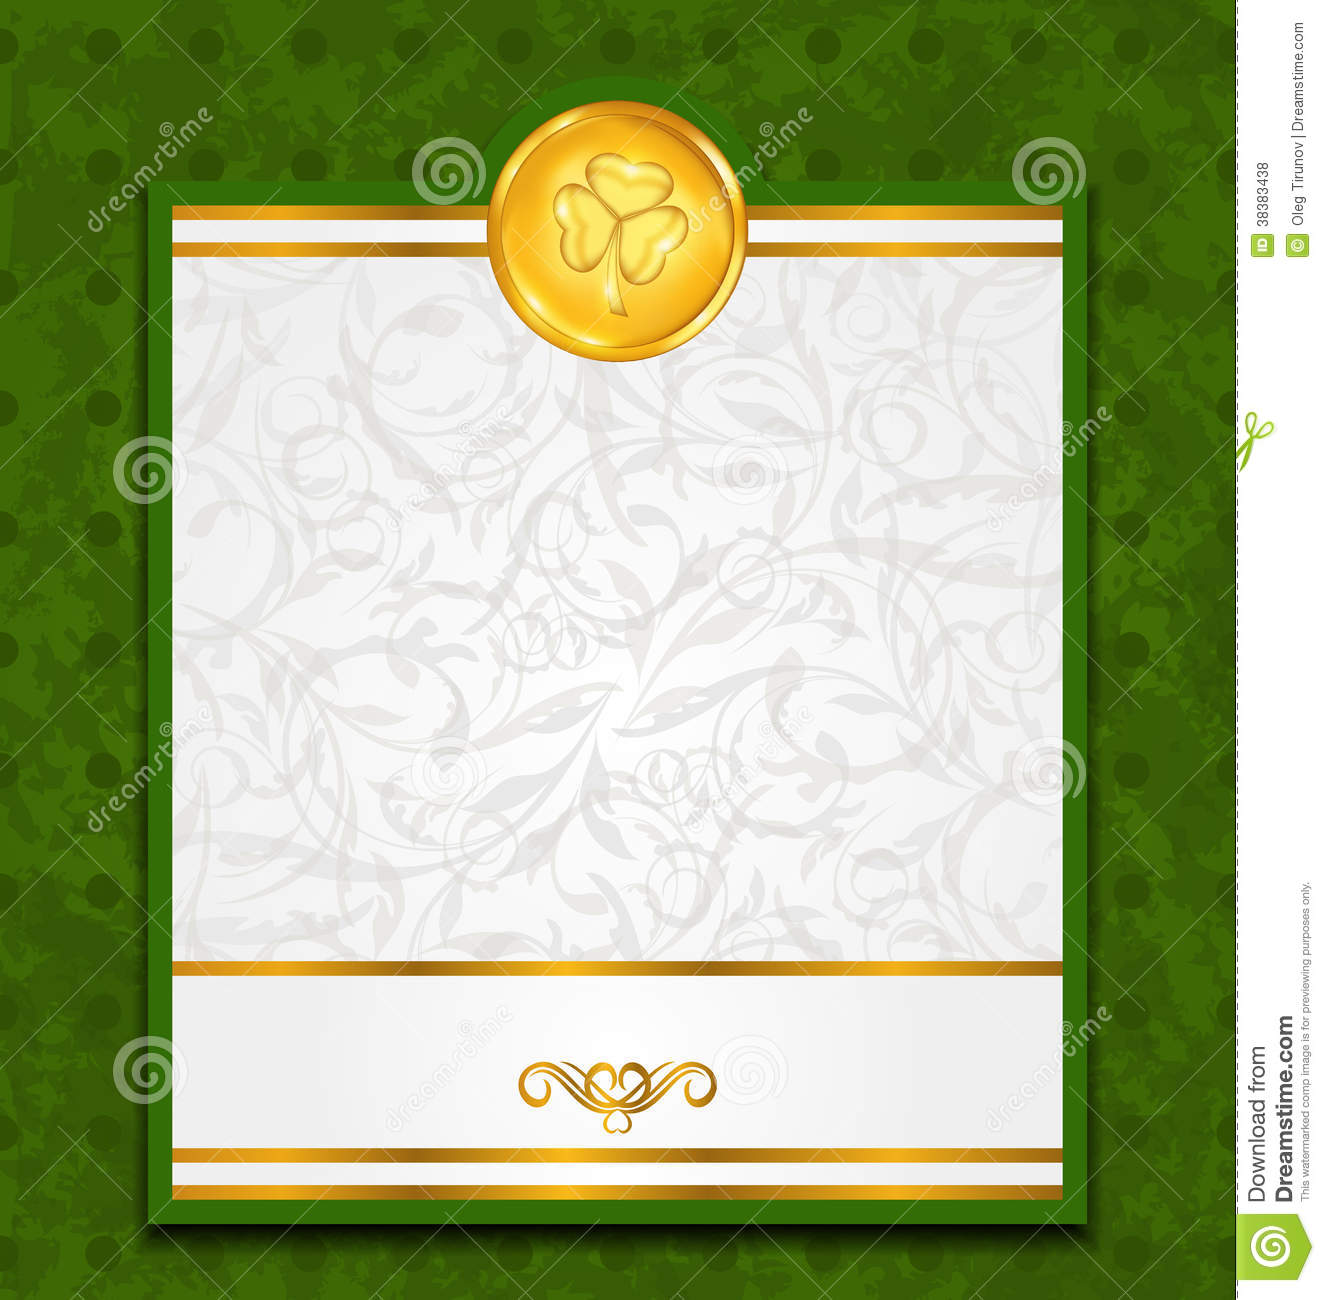 Celebration card with coin for St. Patricks Day